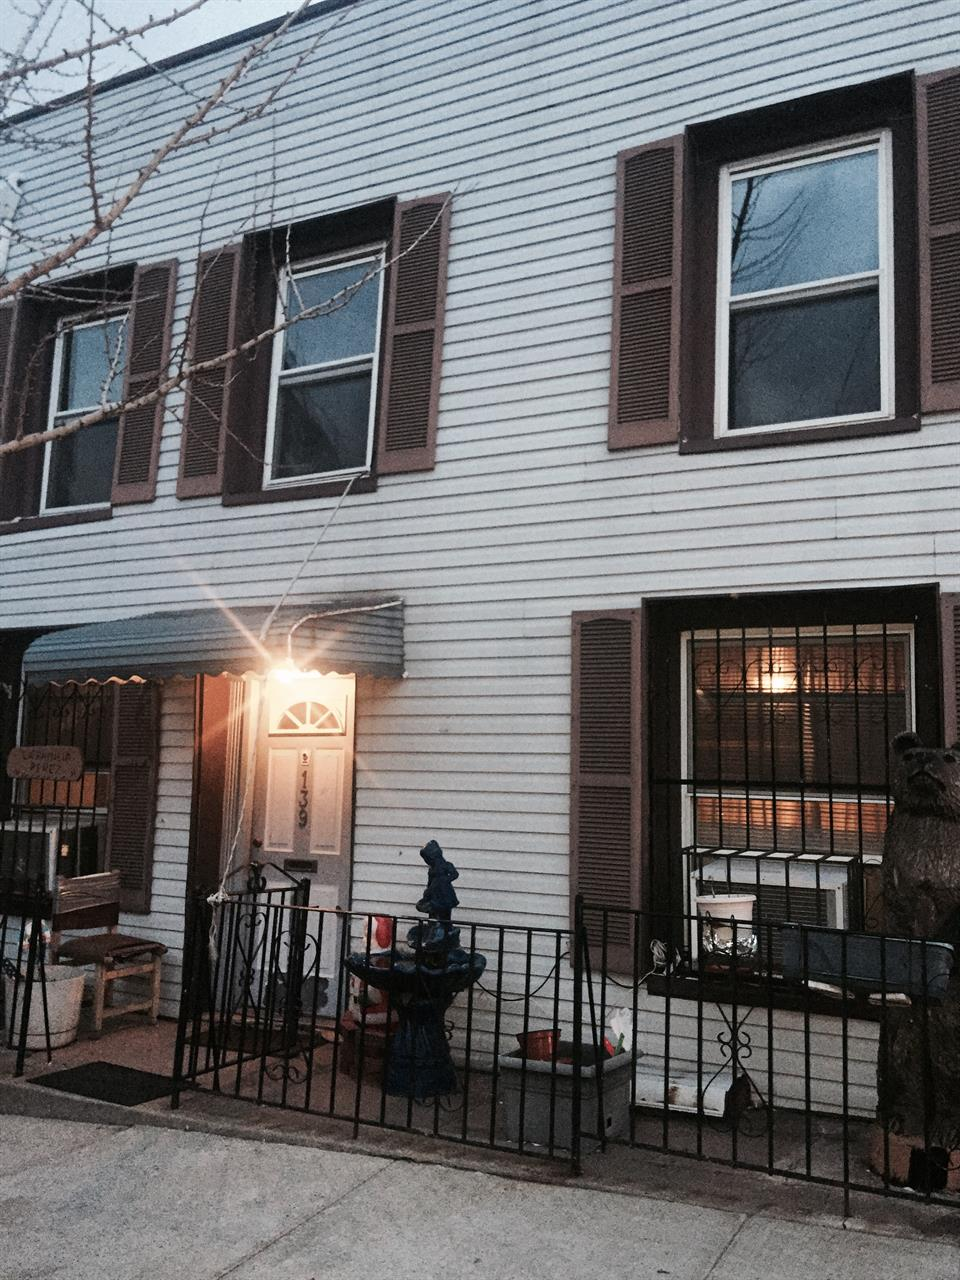 Additional photo for property listing at 139 18th Street  Brooklyn, New York 11215 United States